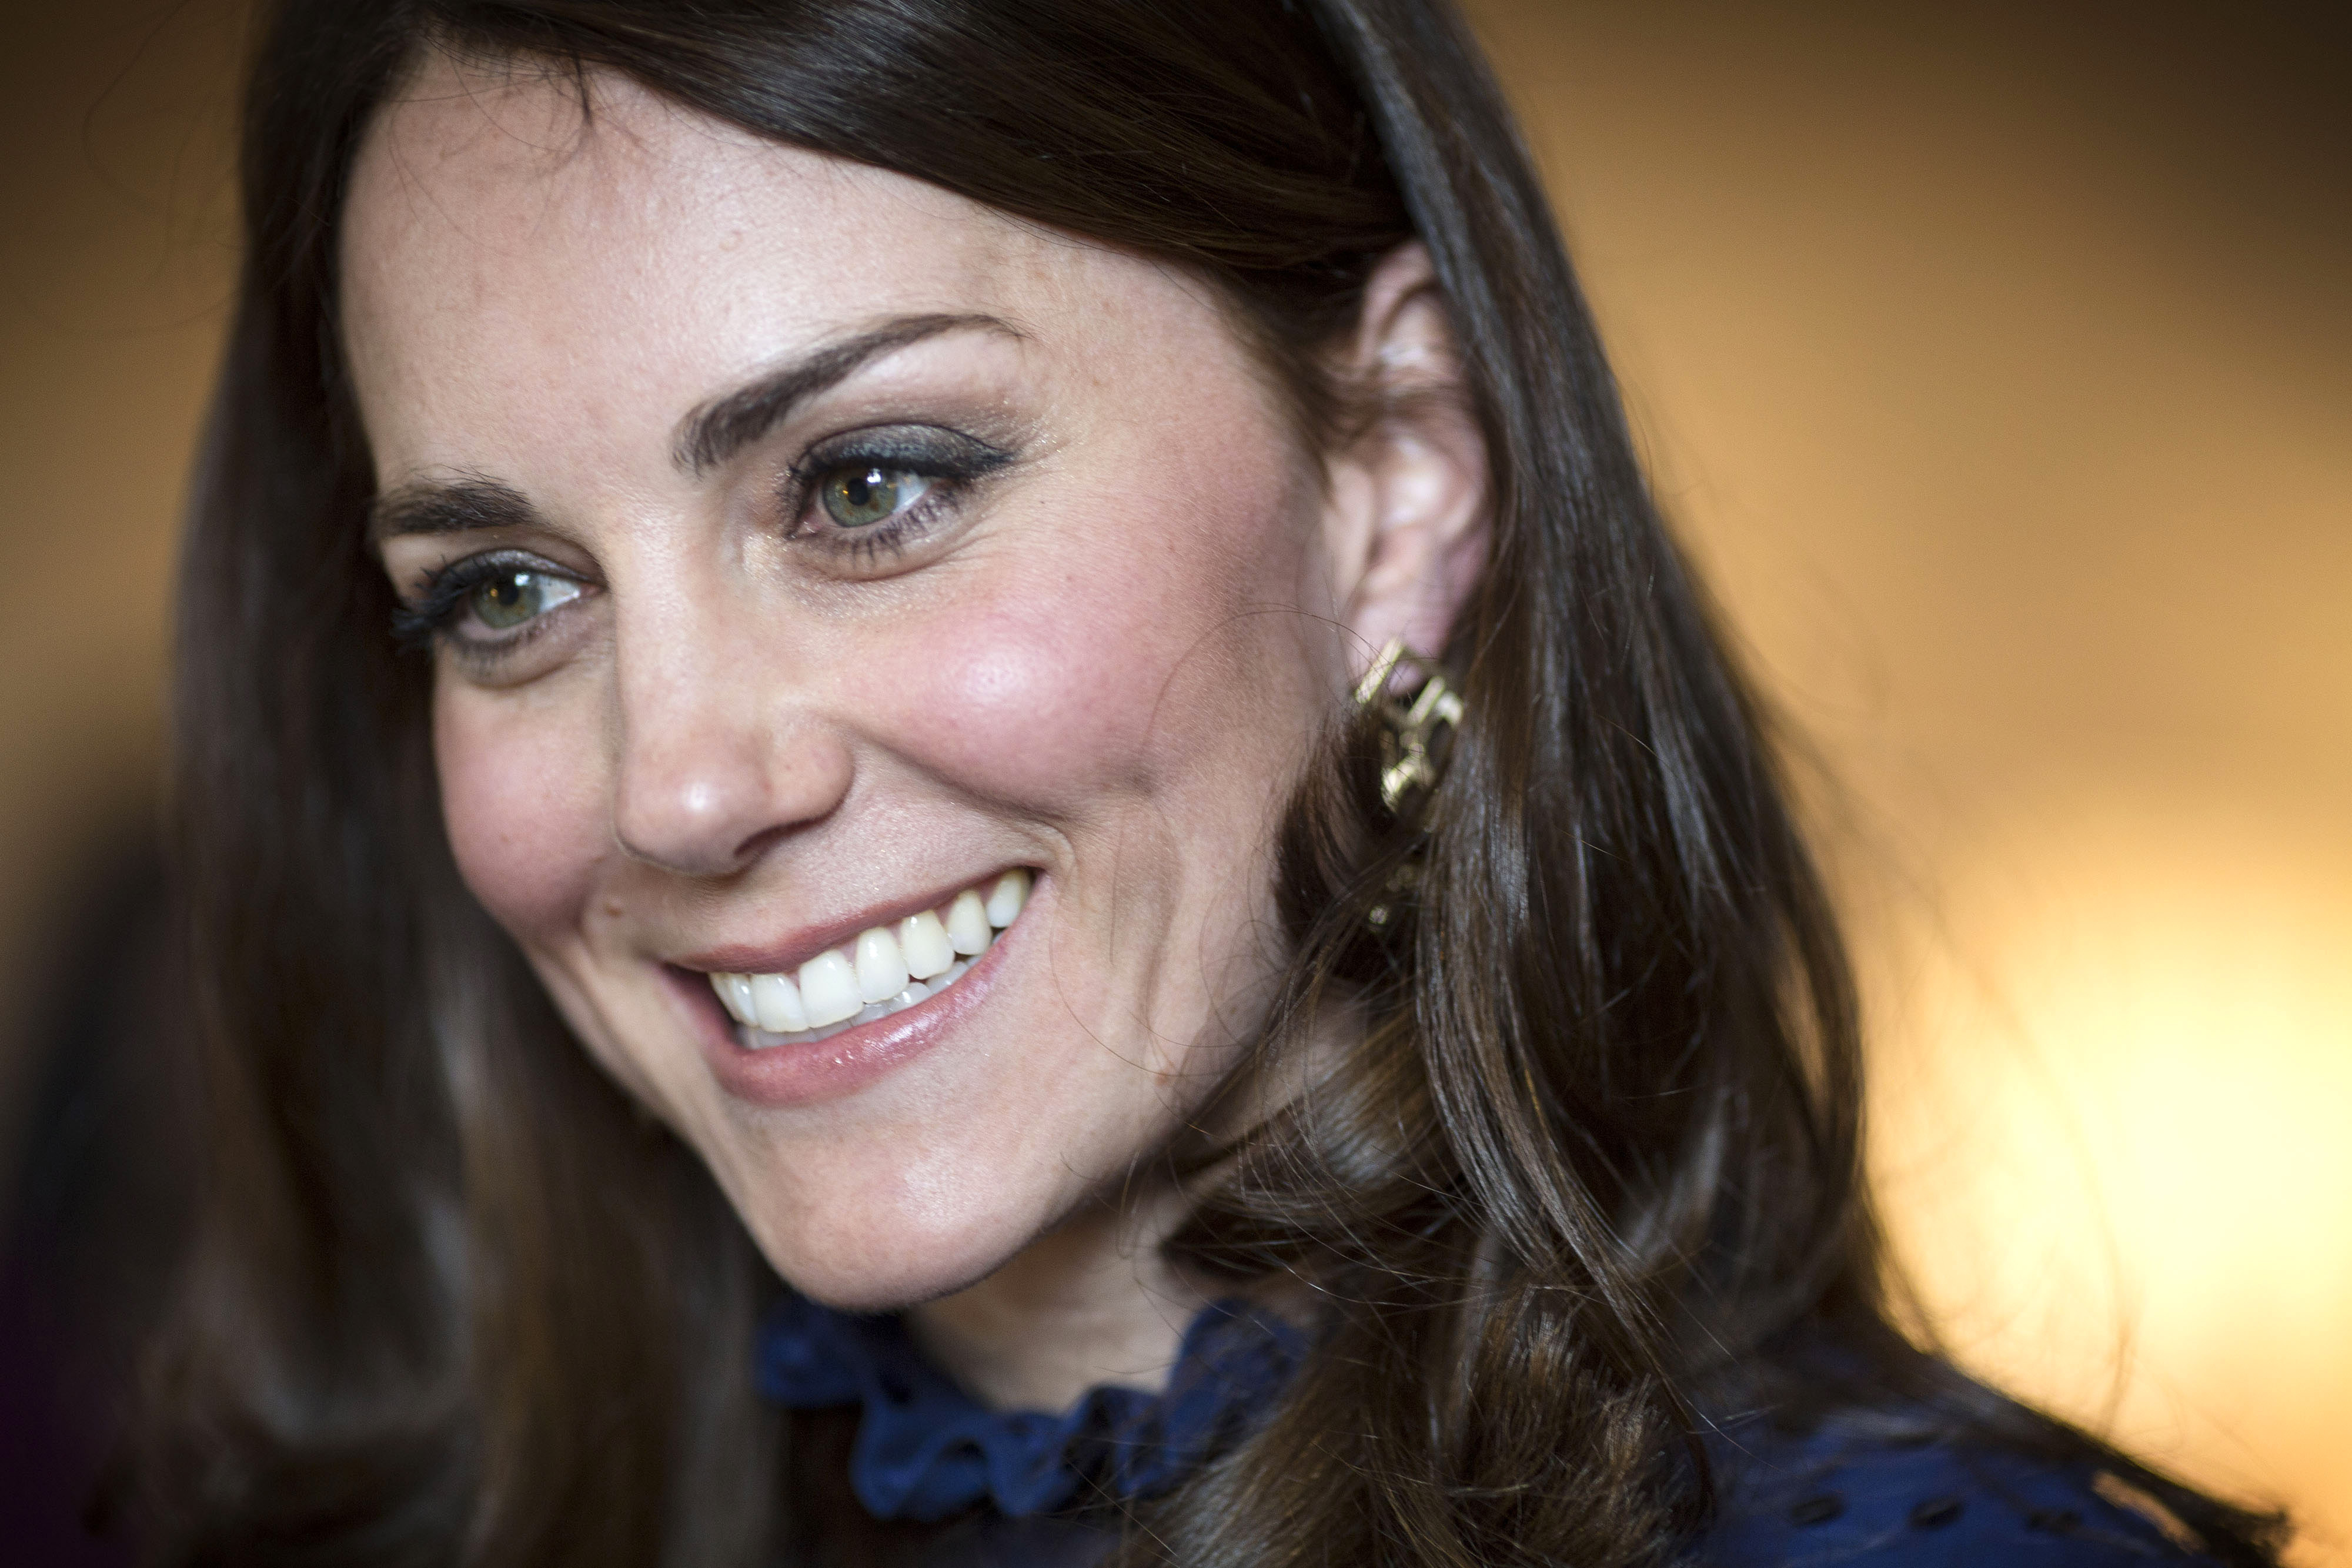 Kate Middleton Smile HD Wallpaper 60860 4000x2667px 4000x2667